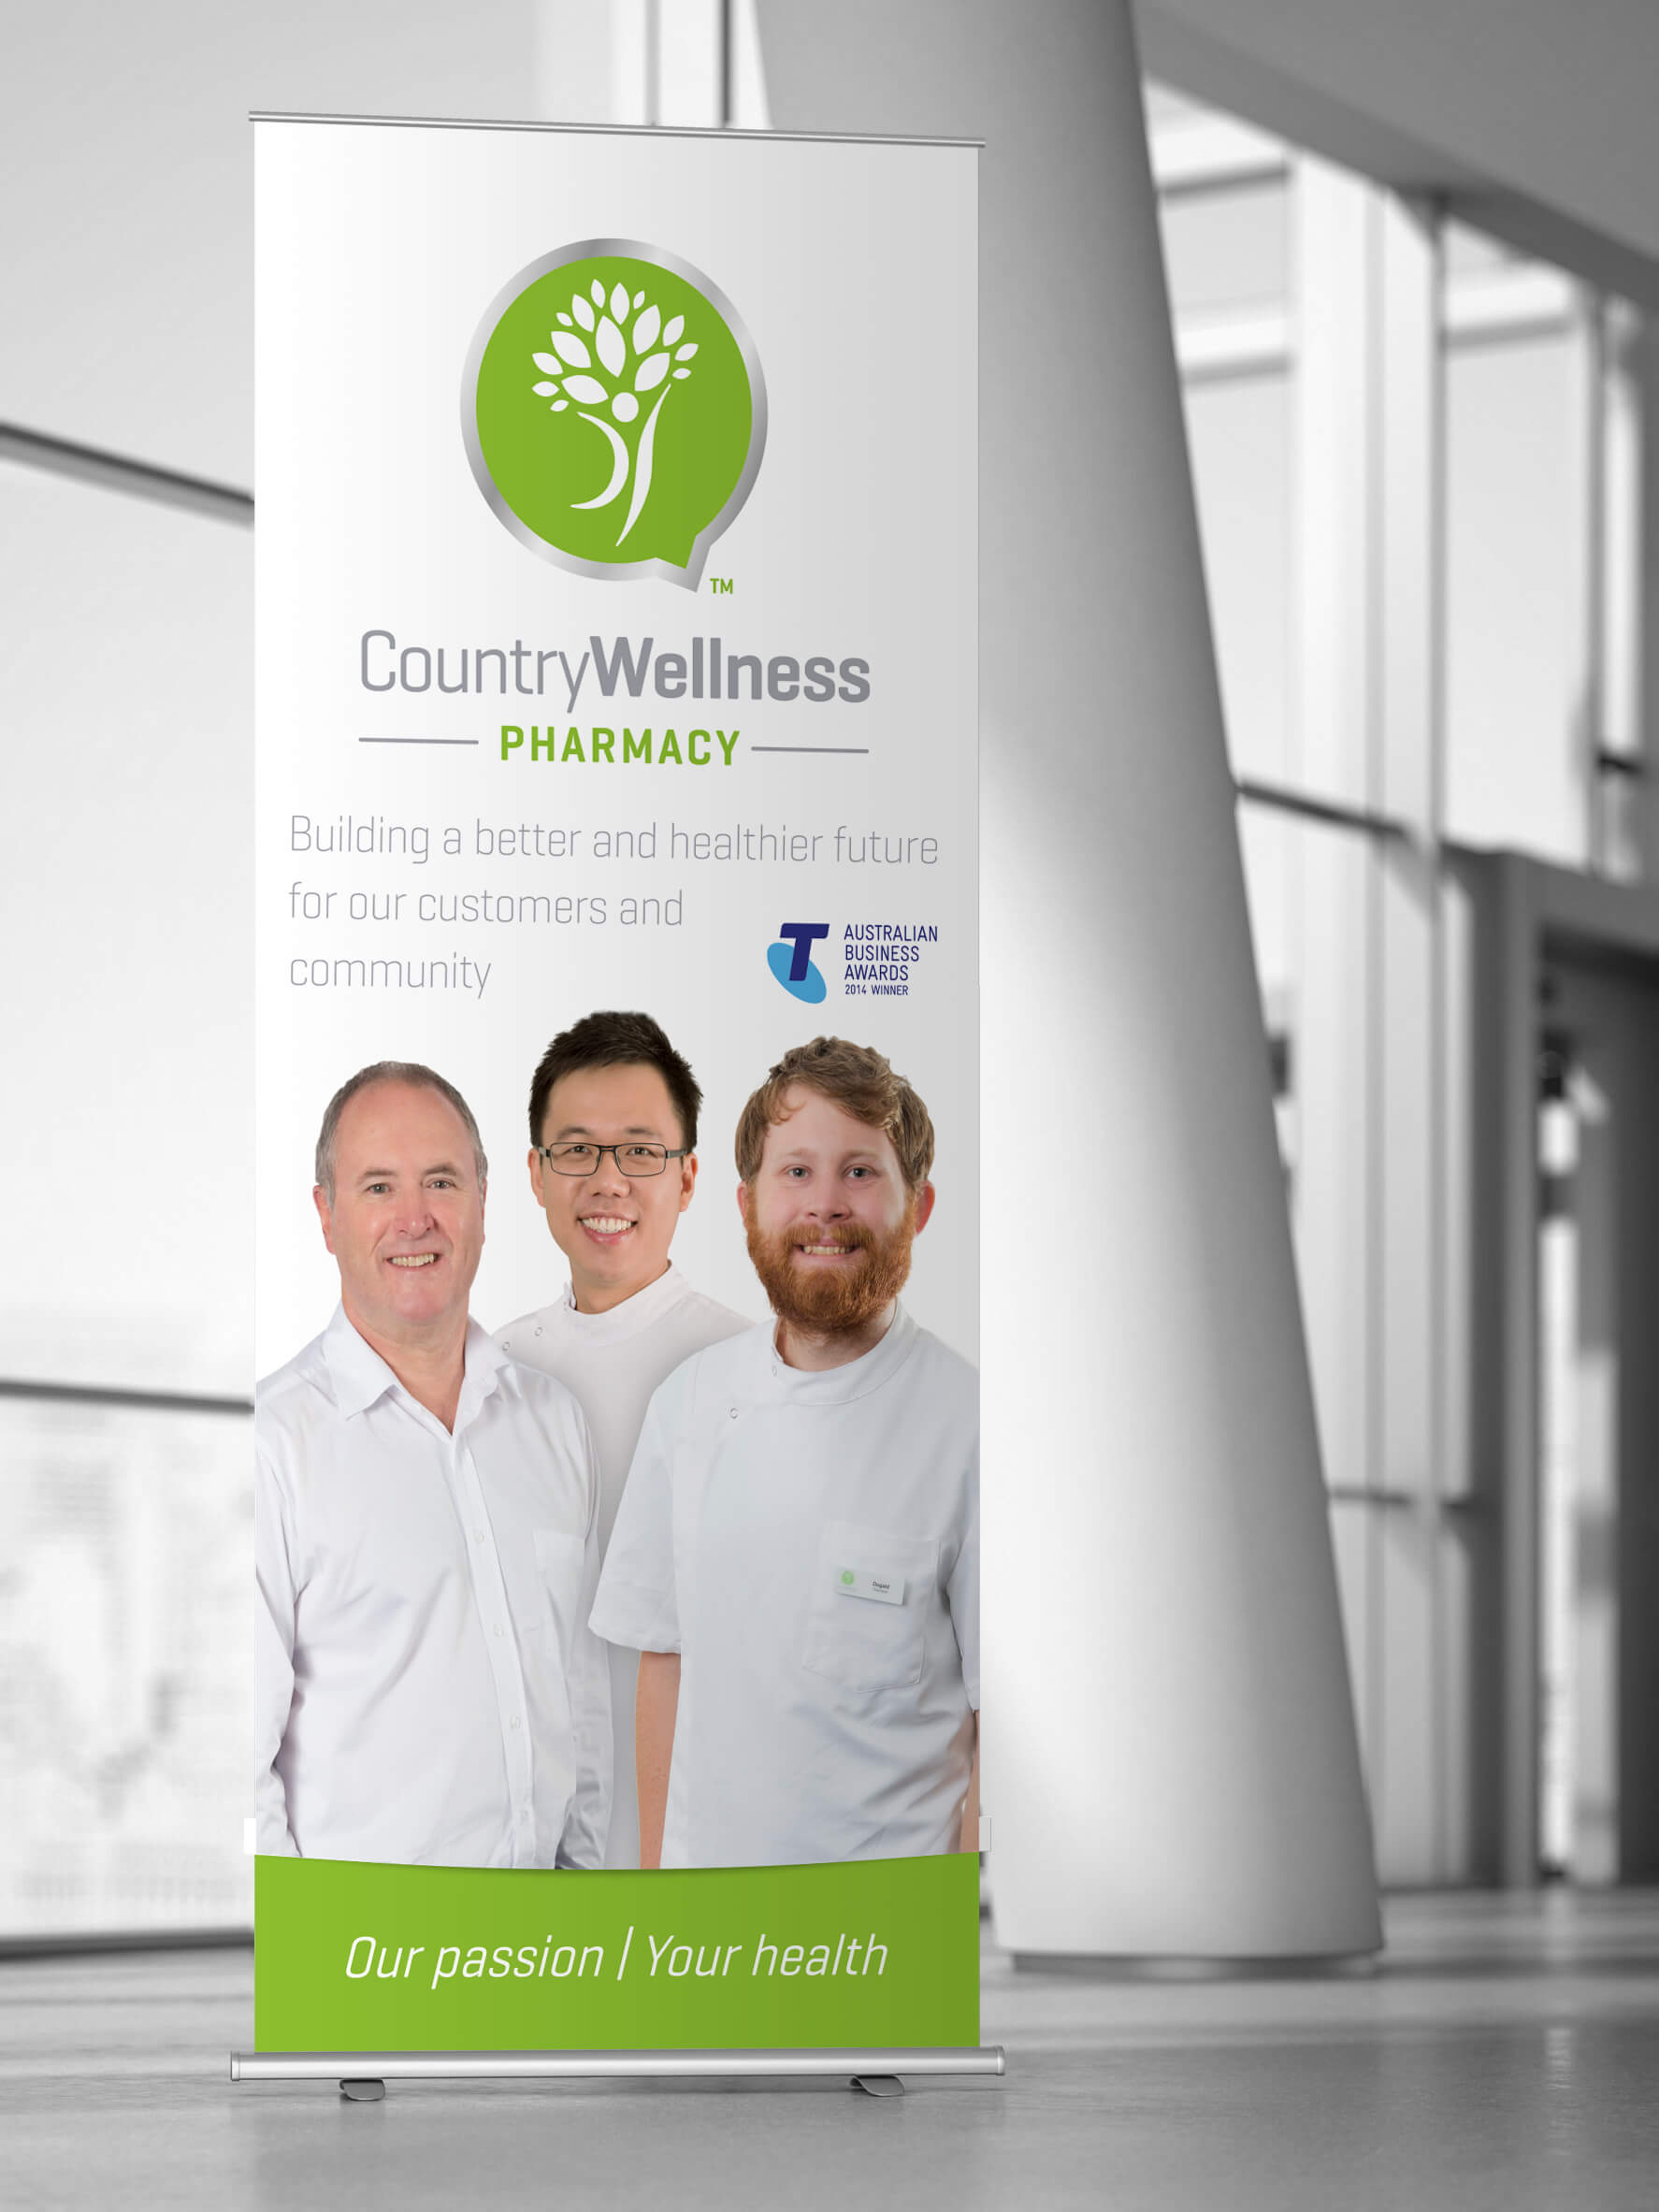 Icon Graphic Design Adelaide - business card design page image of Country Wellness Pharmacy pull-up display.